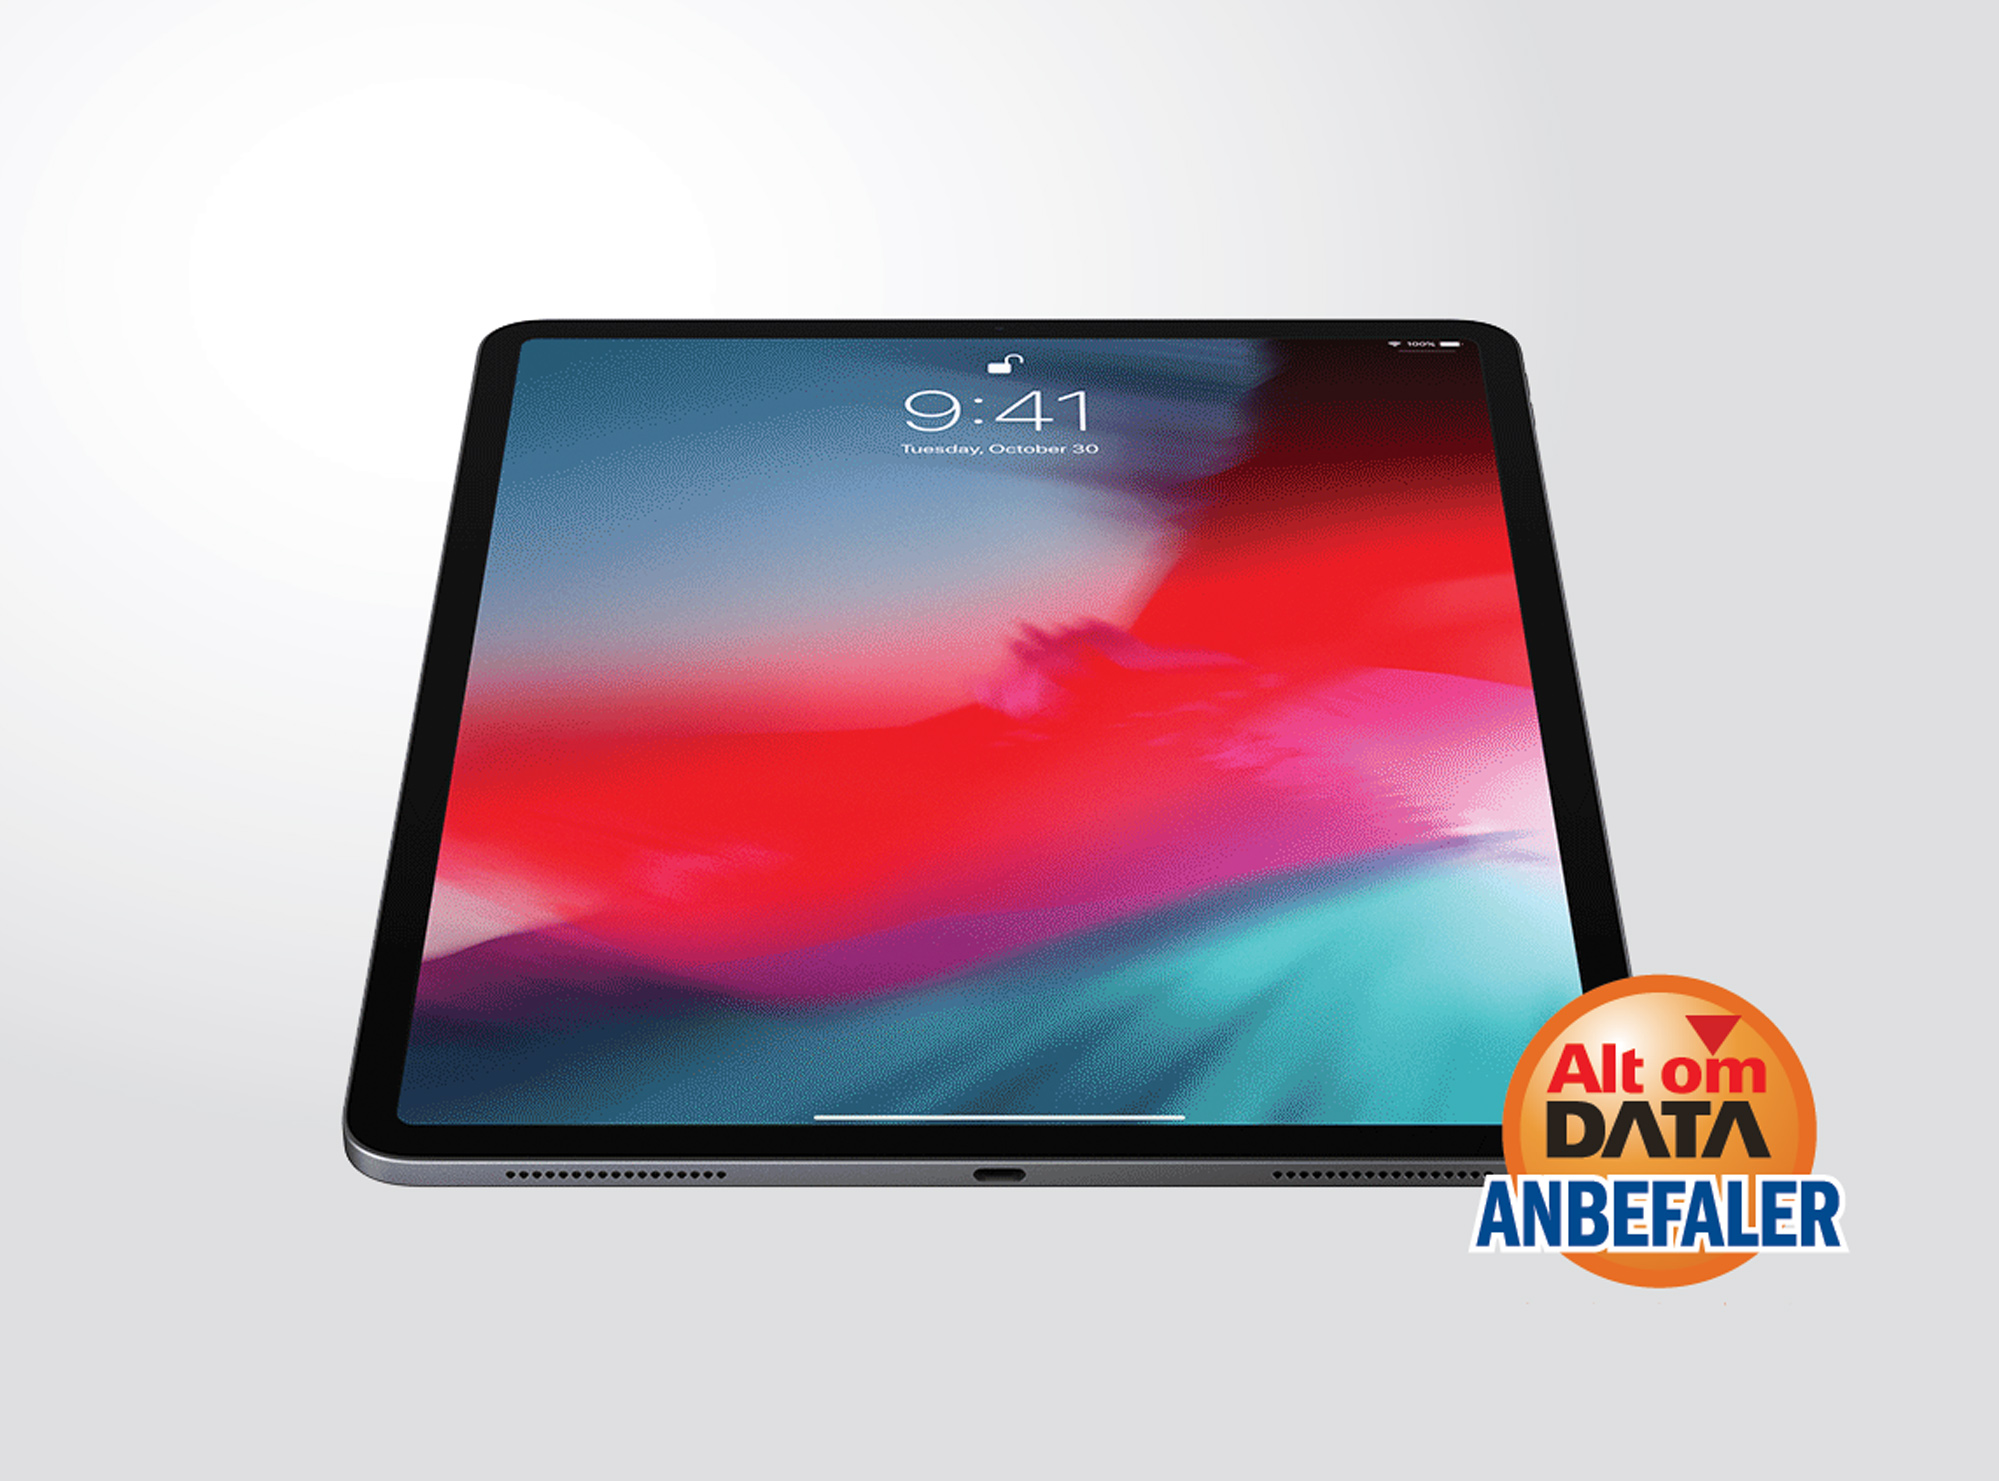 Apple iPad Pro 2018 [TEST]: Apples tablet banker de fleste bærbare